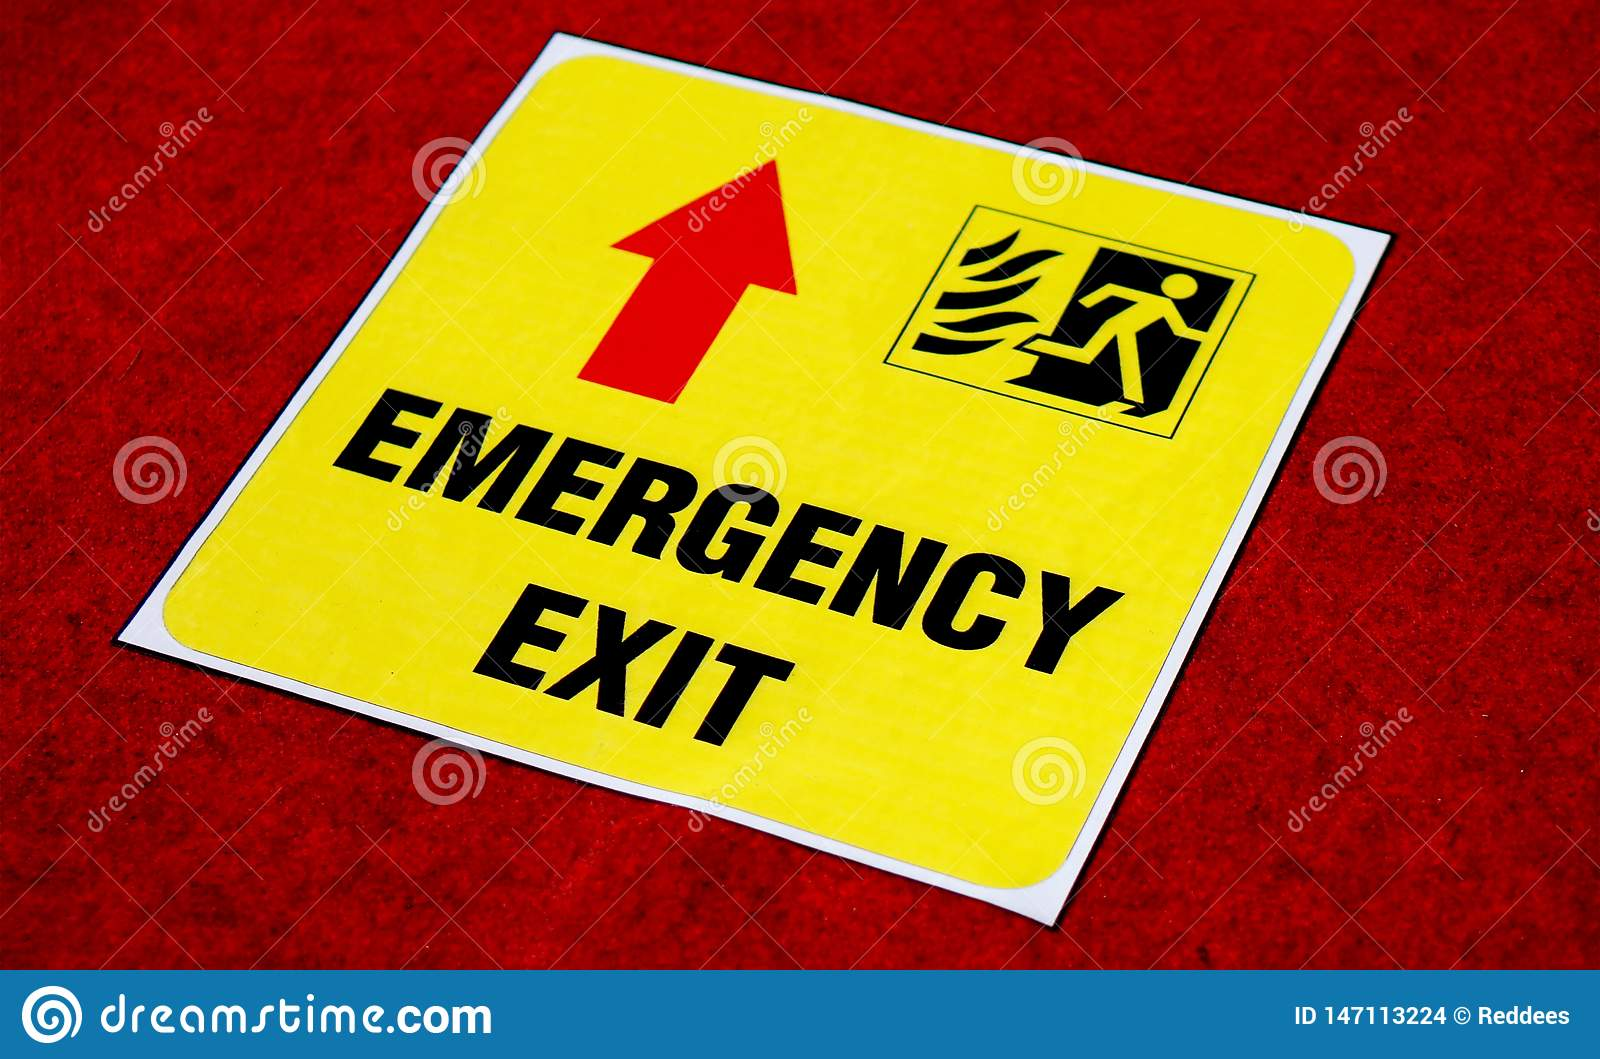 View of Emergency exit way sign sticker on the floor in a public place